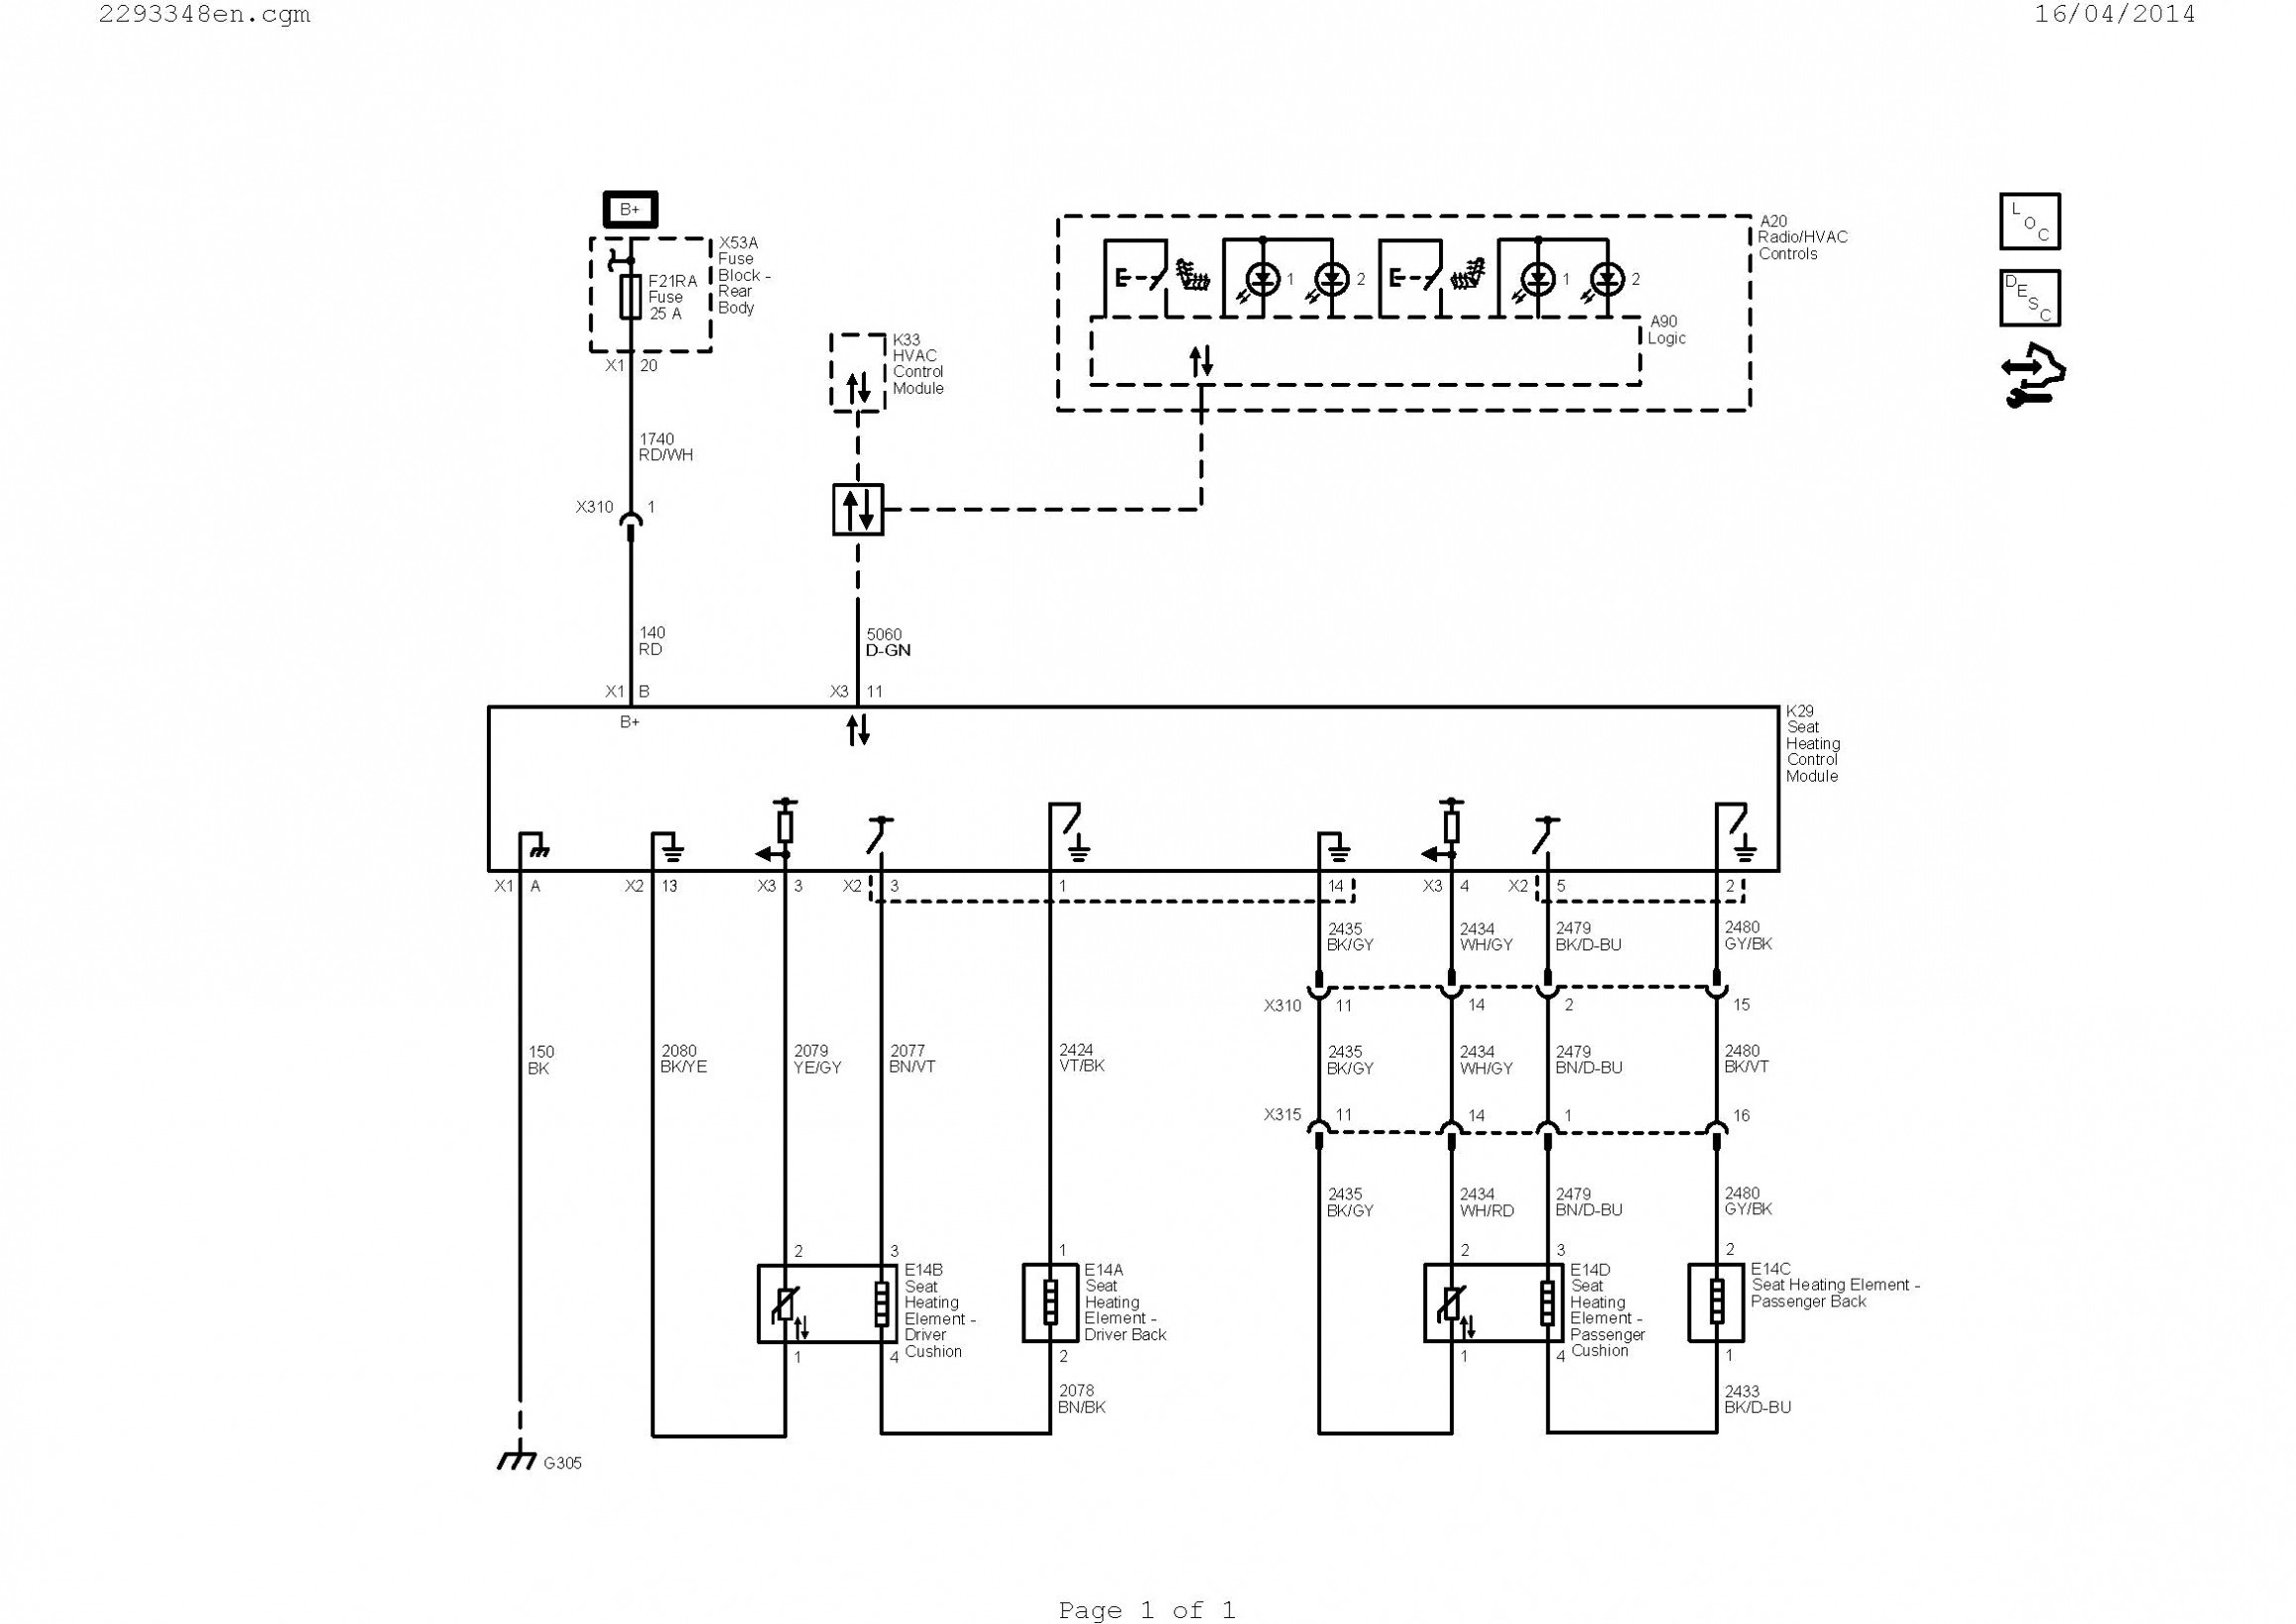 Atwood Water Heater Parts Diagram atwood Furnace Wiring Diagram Citruscyclecenter Of Atwood Water Heater Parts Diagram